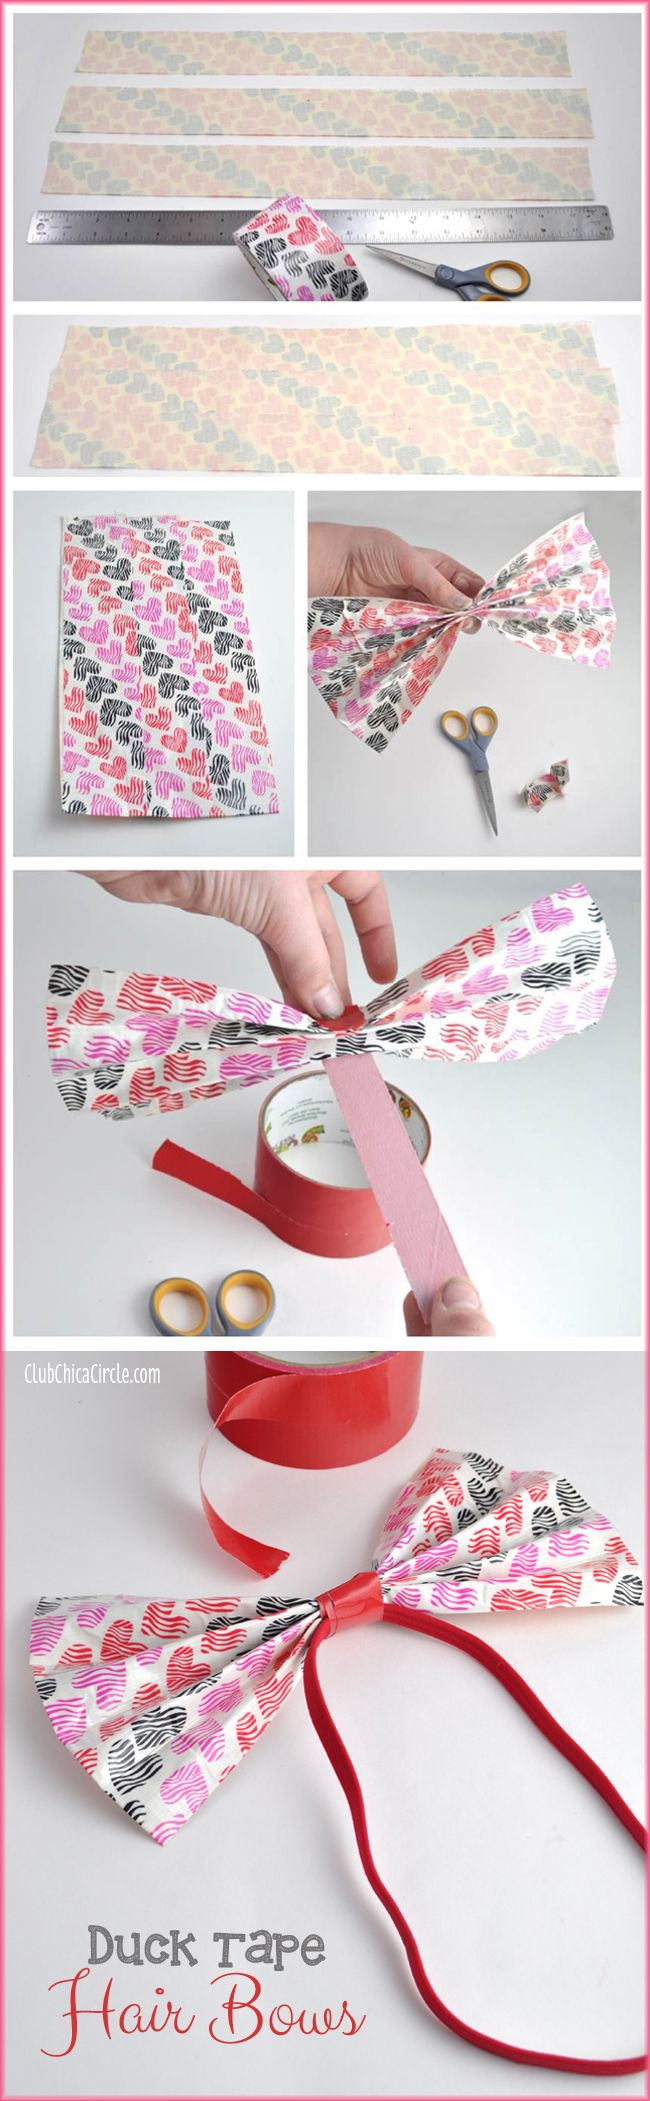 17 best images about duck tape craft ideas on pinterest for Duck tape craft ideas